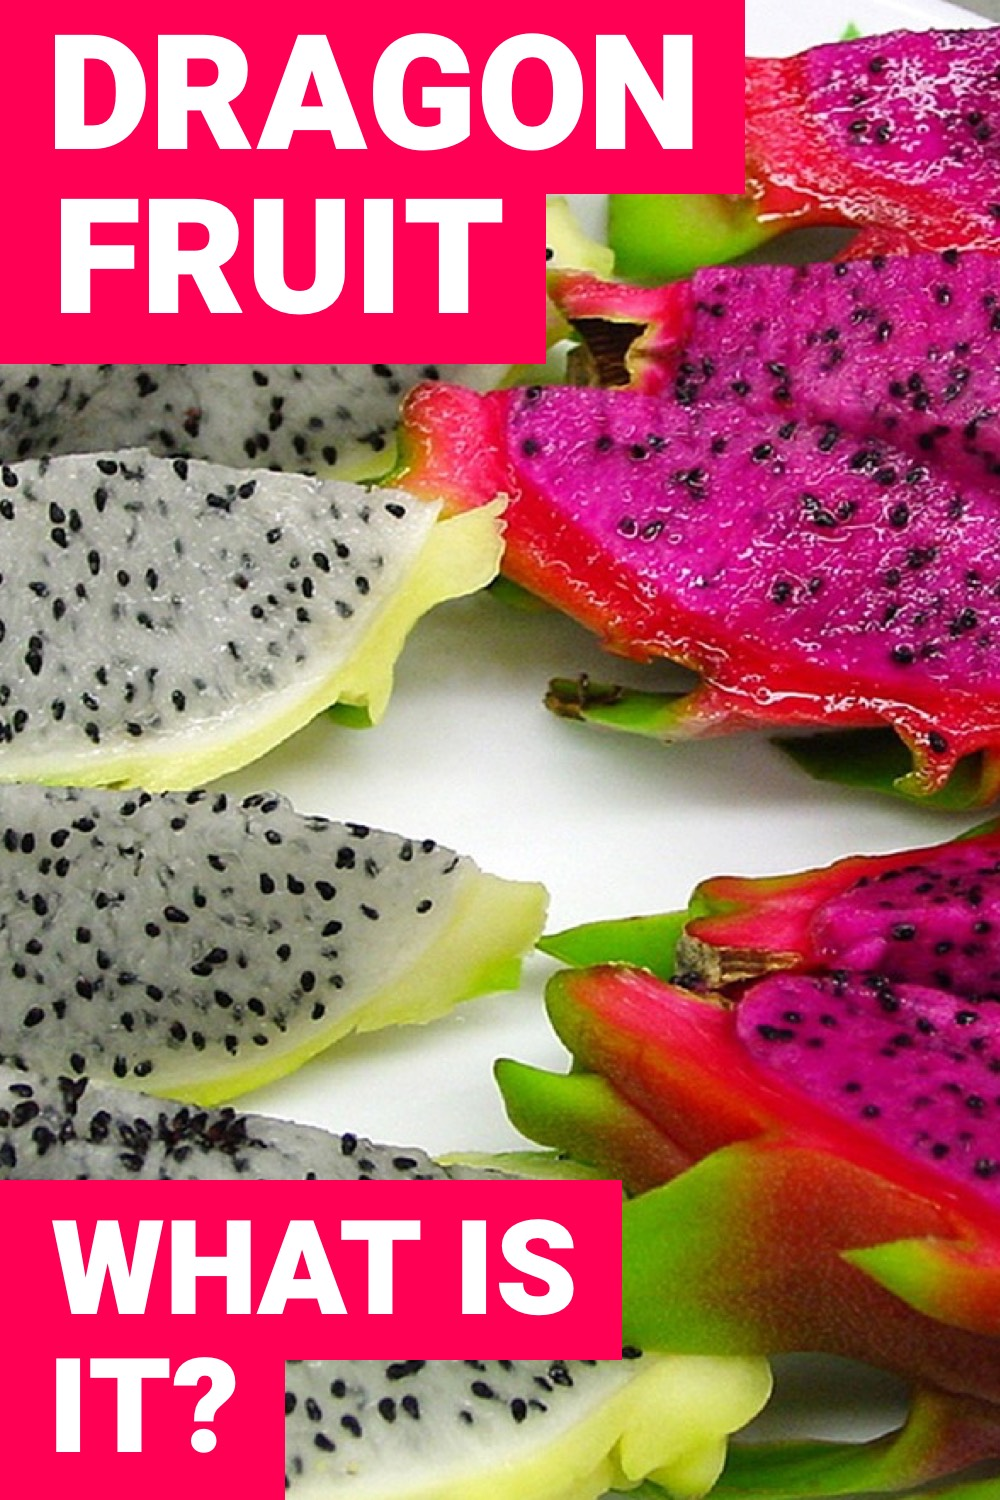 Dragon fruit is a fruit you may have never had. Should you have it? How do you eat dragon fruit? What does dragon fruit taste like?